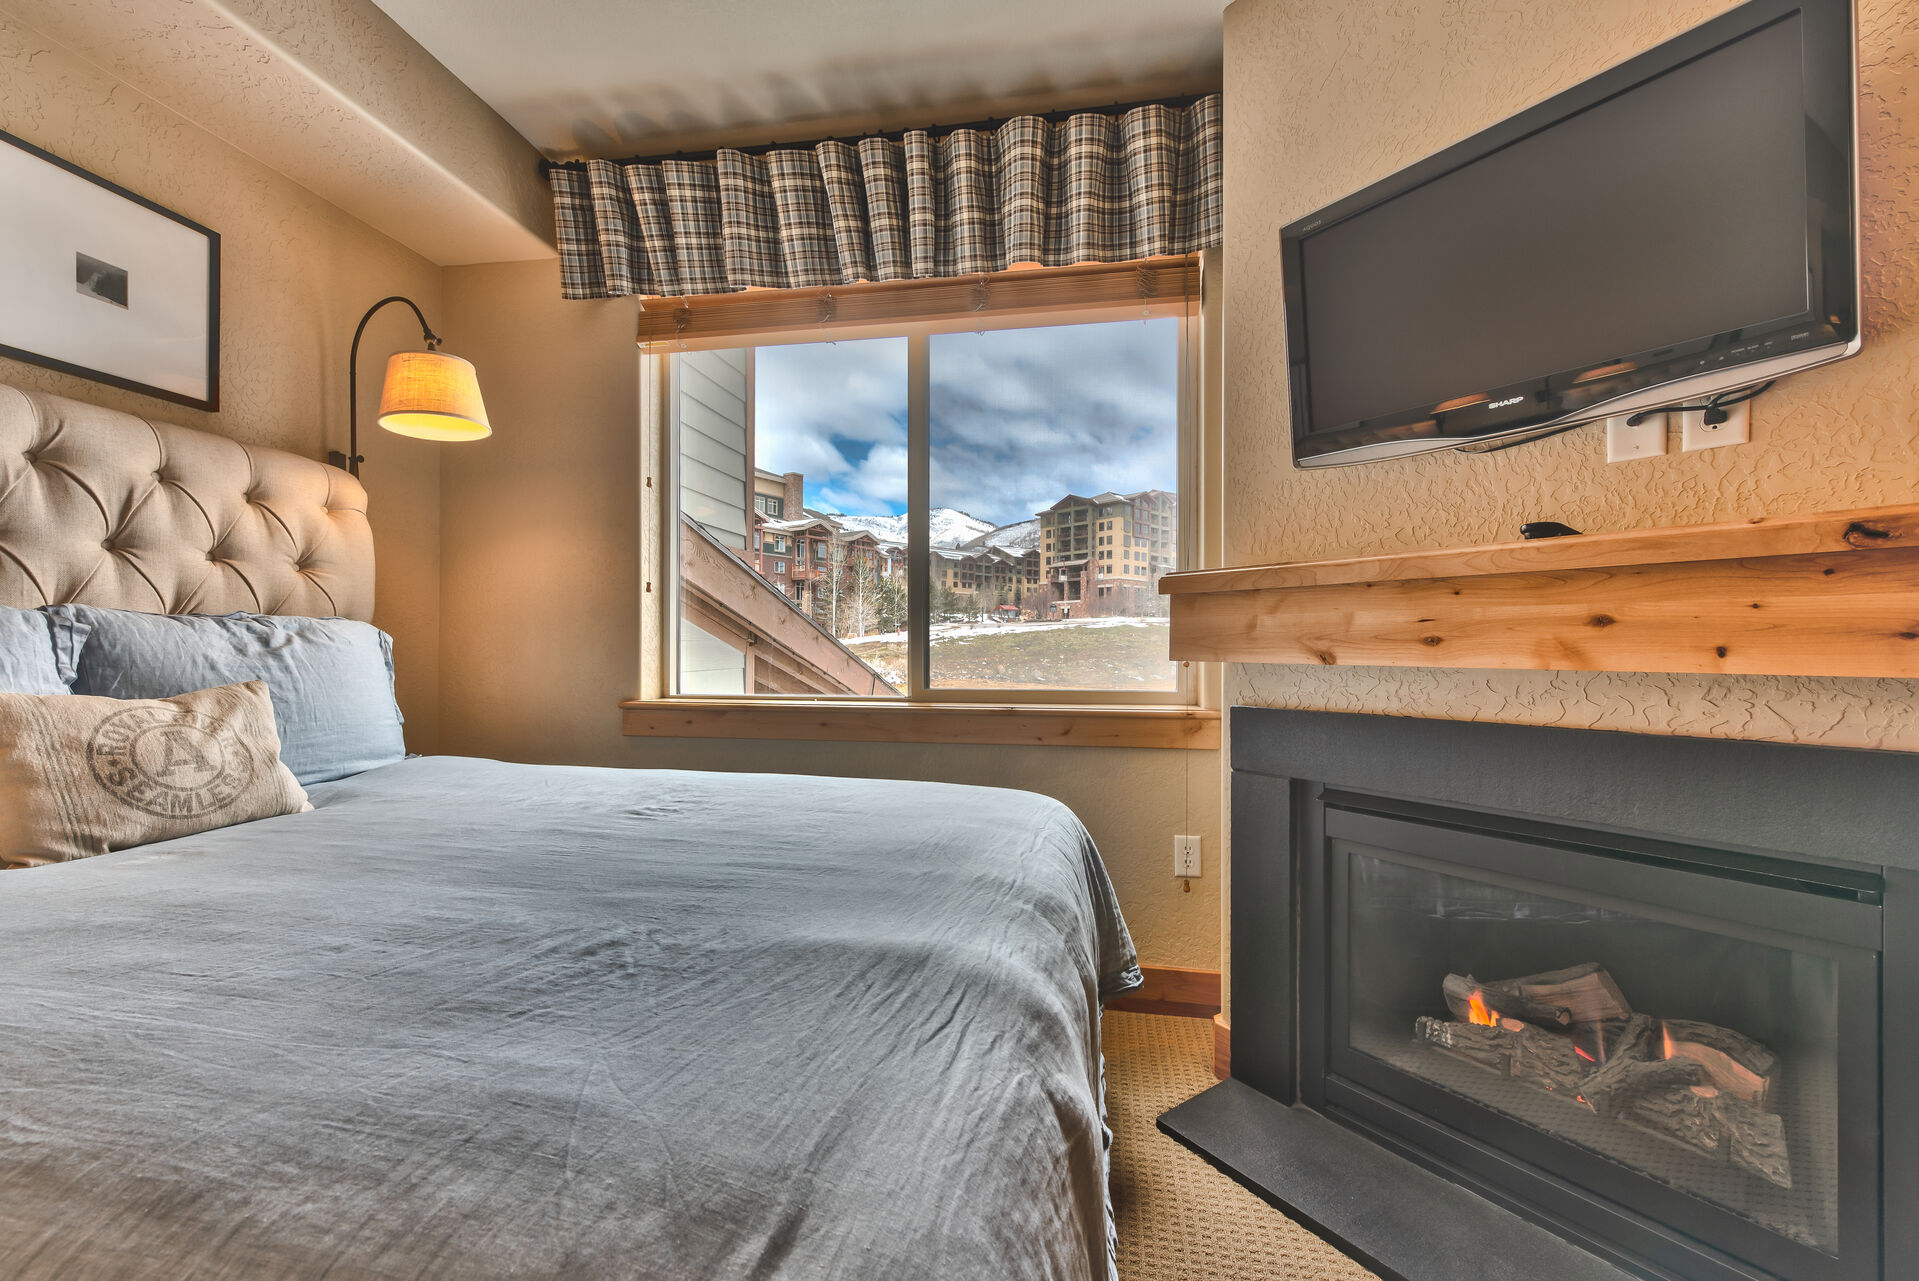 Bedroom 2 with Two Queen beds, a Warm Gas Fireplace, and Mountain Views